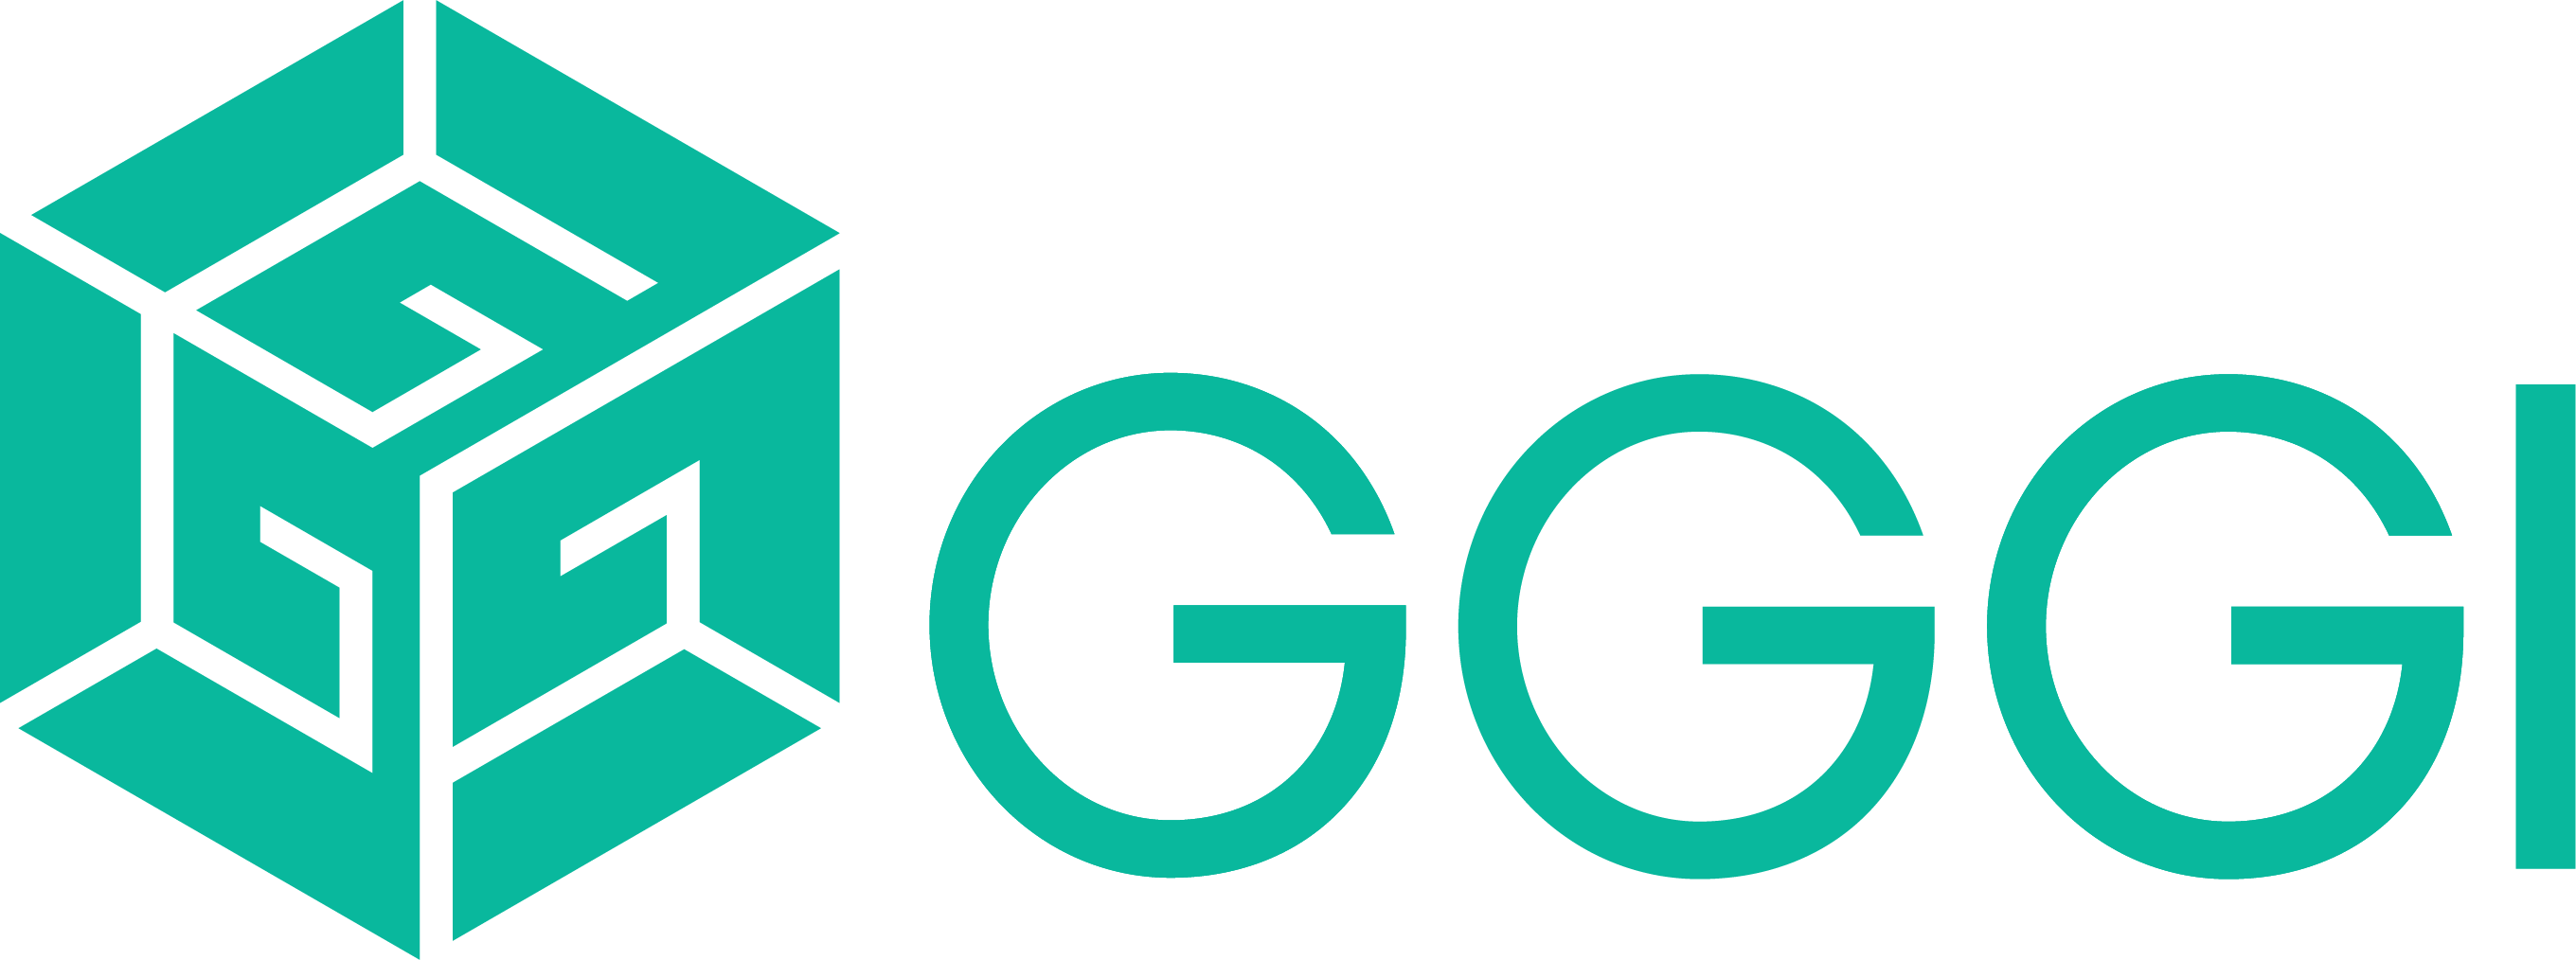 1.31 Gggi Logo New Green